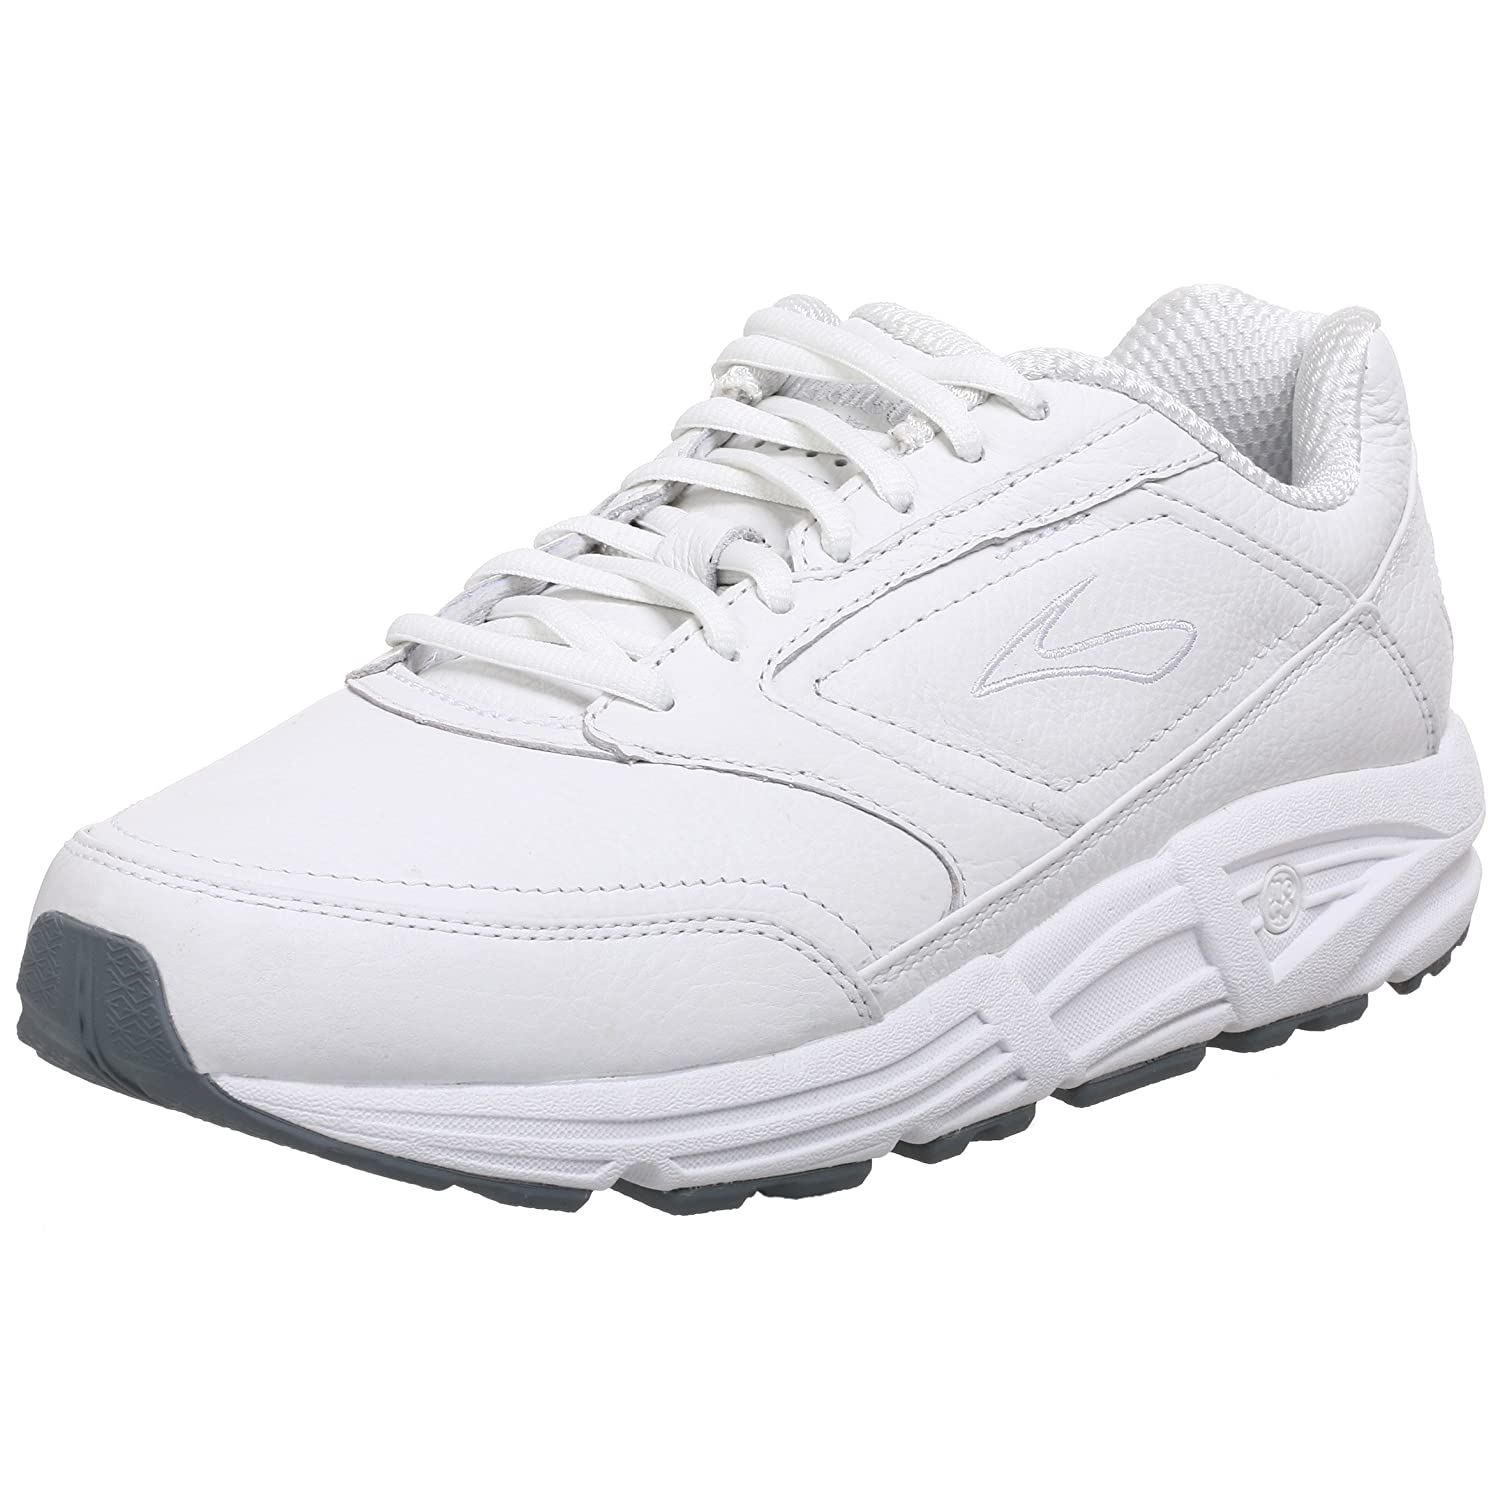 best shoes for walking all day seekyt